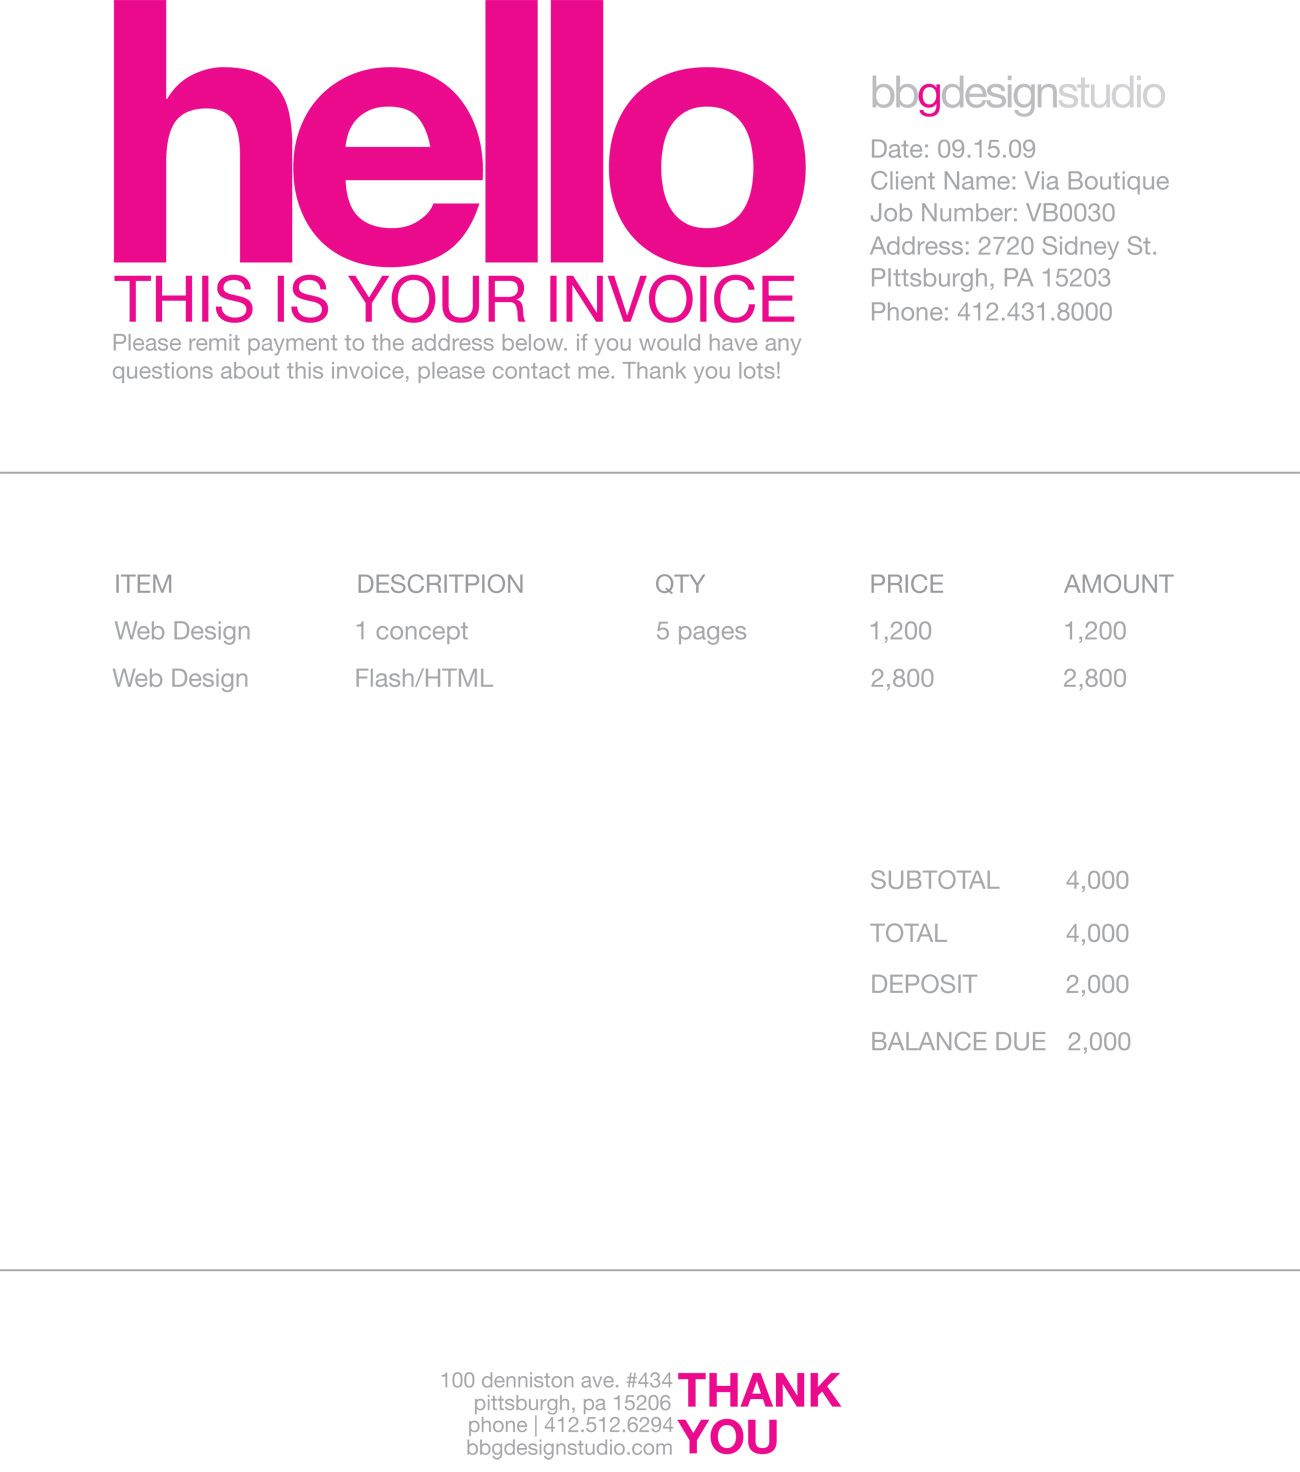 Aaaaeroincus  Pleasing  Images About Invoice Design On Pinterest With Engaging Personal Invoice Besides Write Off Unpaid Invoices Furthermore Invoice Generator Free With Archaic Provide Invoice Also Commercial Invoice Dhl In Addition Ups Invoice Guide And Handyman Invoice As Well As Contractor Invoice Format Additionally Mazda Invoice Price From Pinterestcom With Aaaaeroincus  Engaging  Images About Invoice Design On Pinterest With Archaic Personal Invoice Besides Write Off Unpaid Invoices Furthermore Invoice Generator Free And Pleasing Provide Invoice Also Commercial Invoice Dhl In Addition Ups Invoice Guide From Pinterestcom